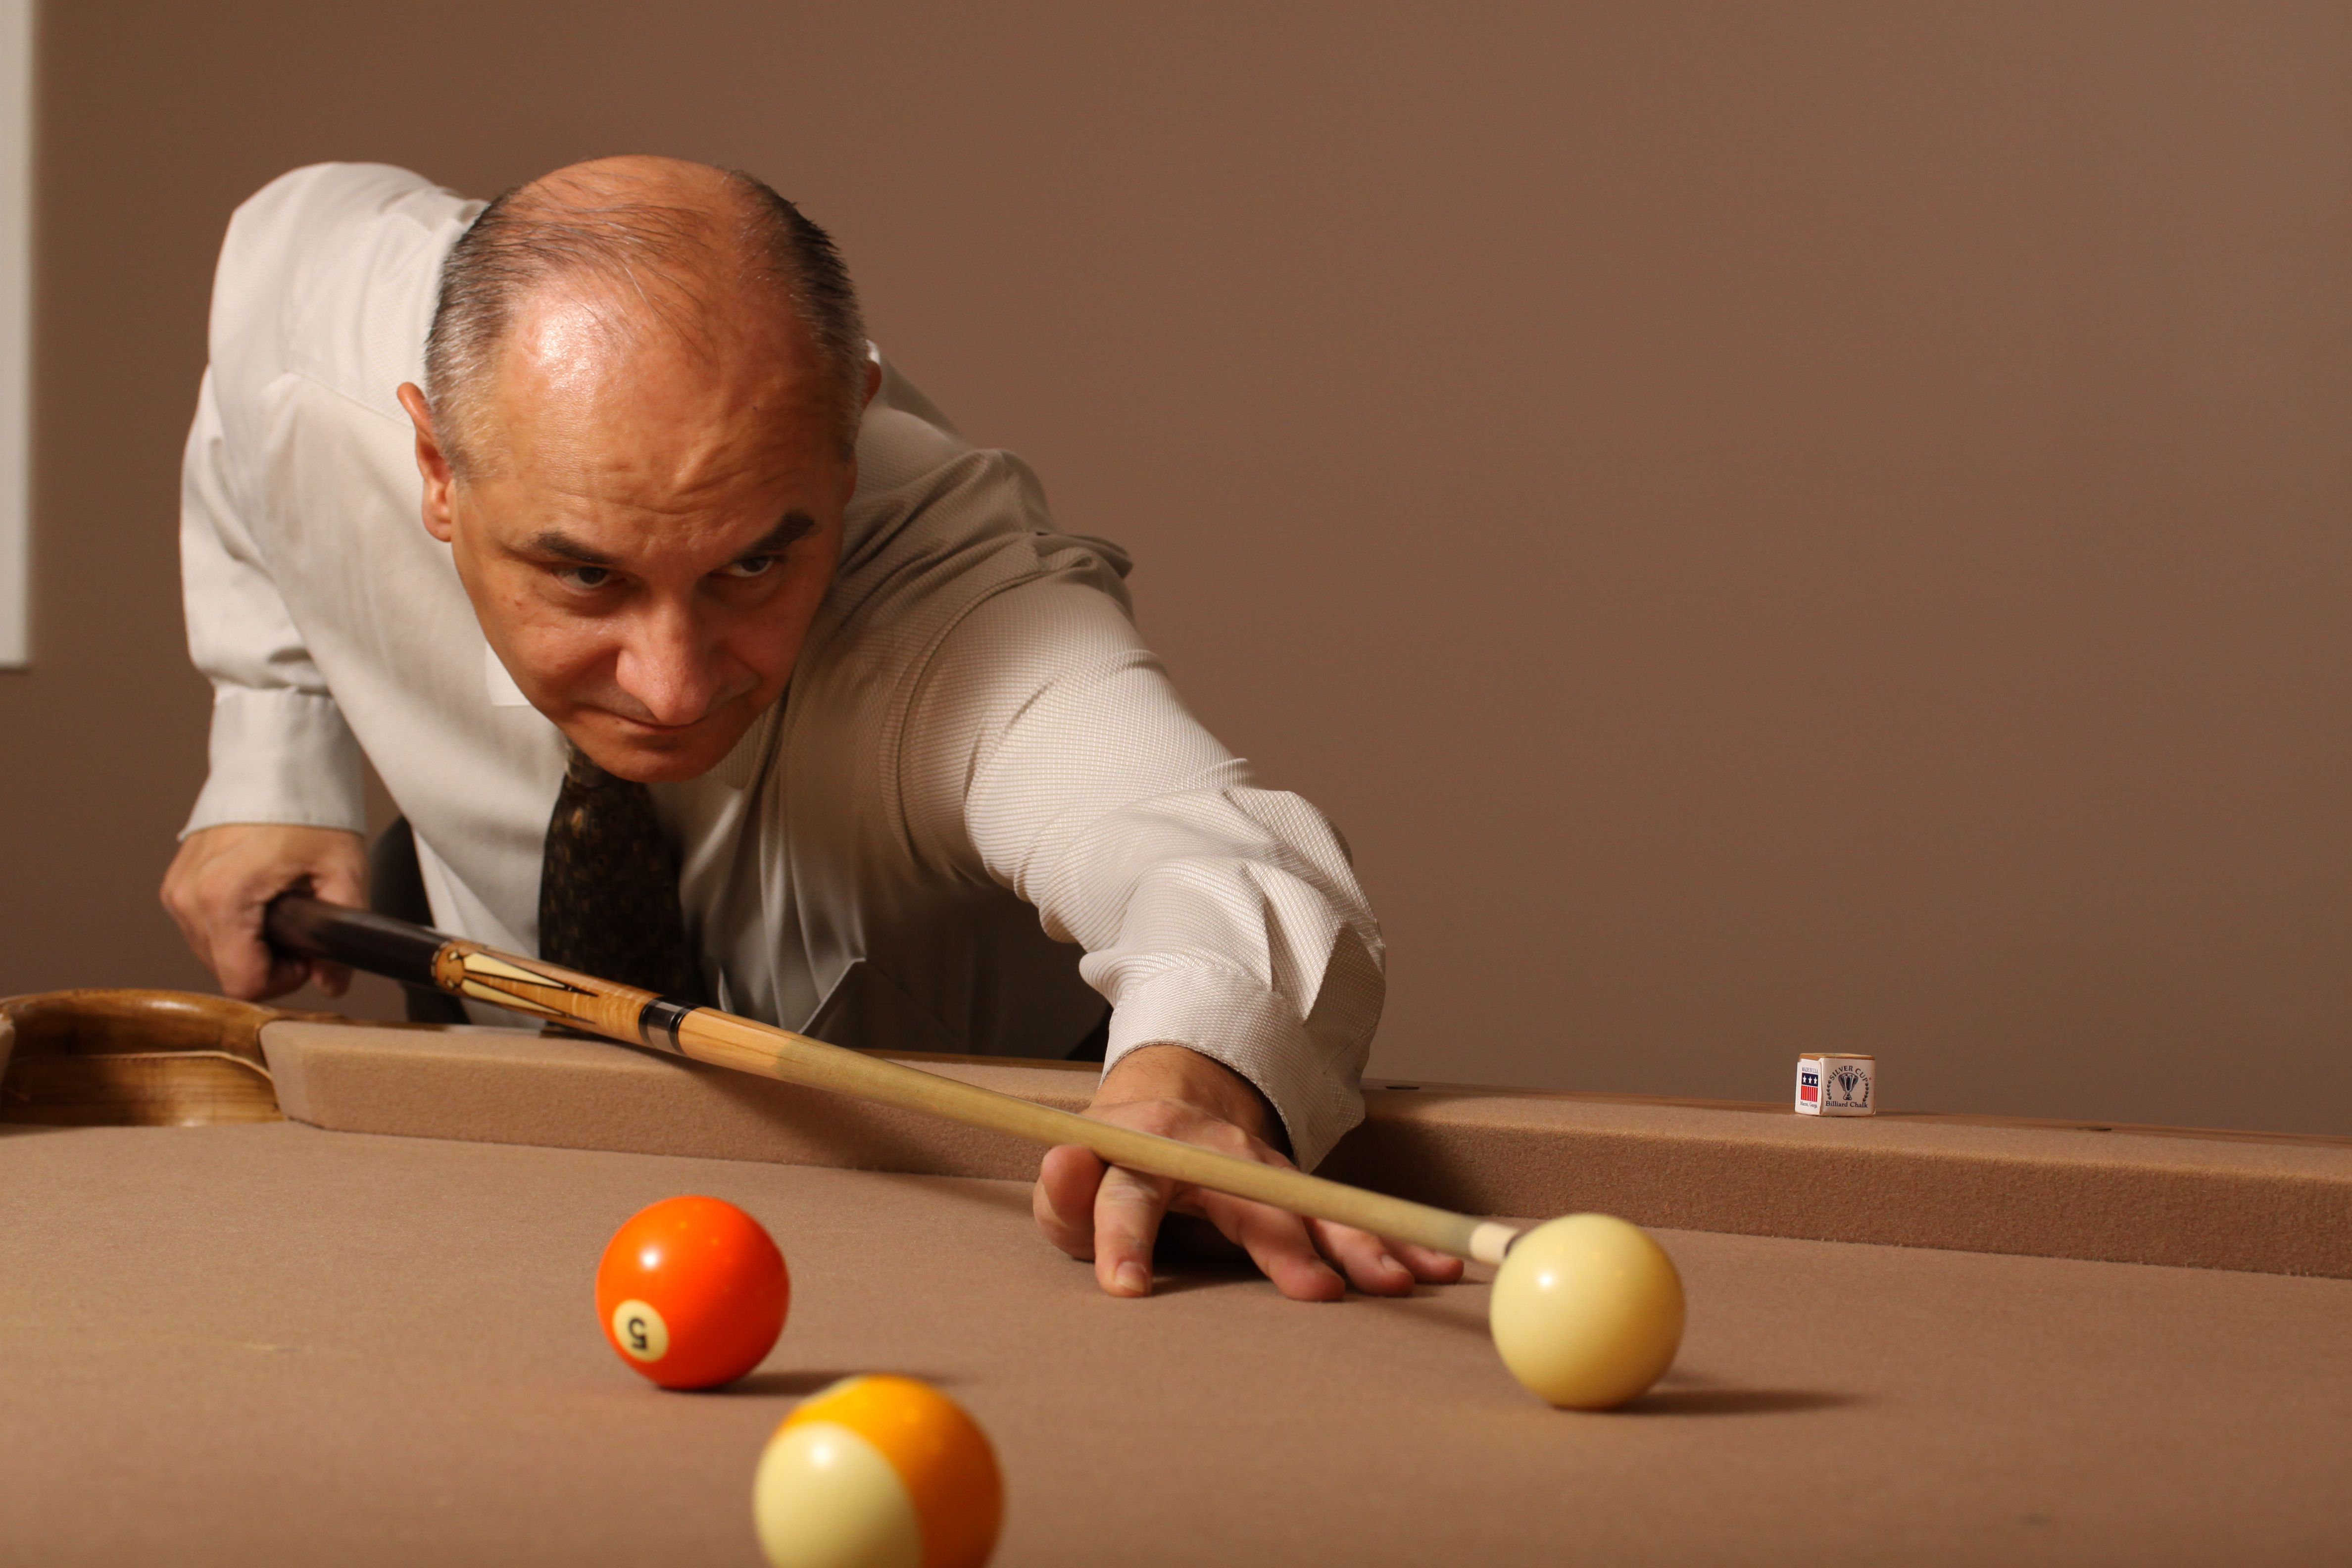 Perfect step by step set up to the Cue ball | PaulPotier com